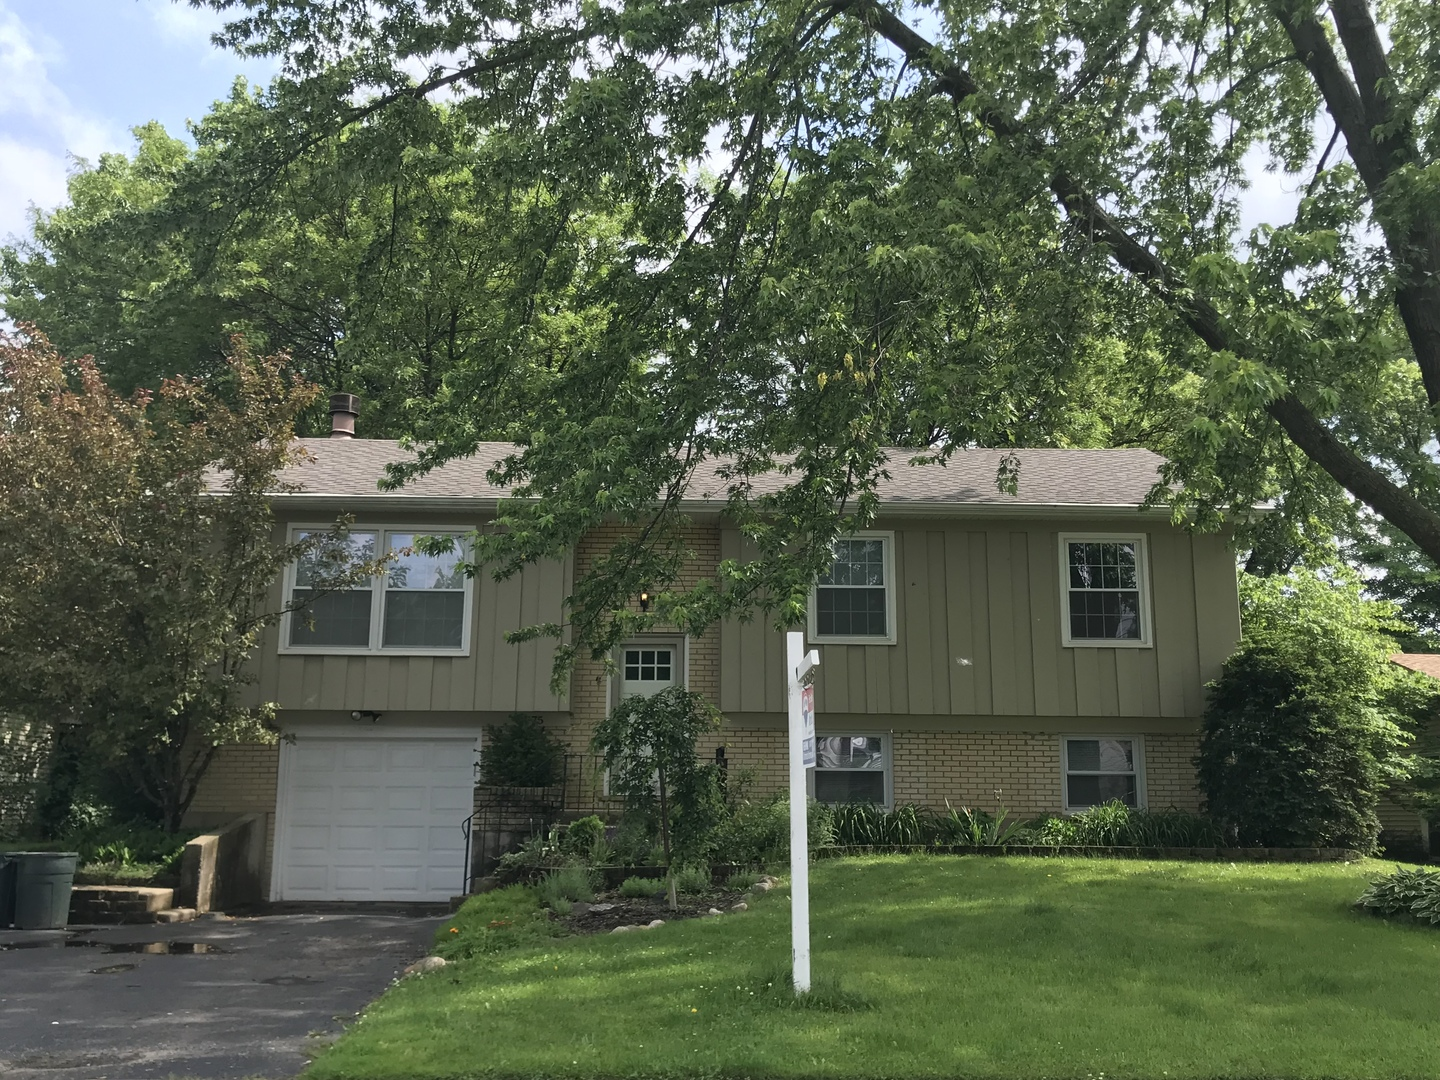 1075 Browning Lane, Lake Zurich in Lake County, IL 60047 Home for Sale